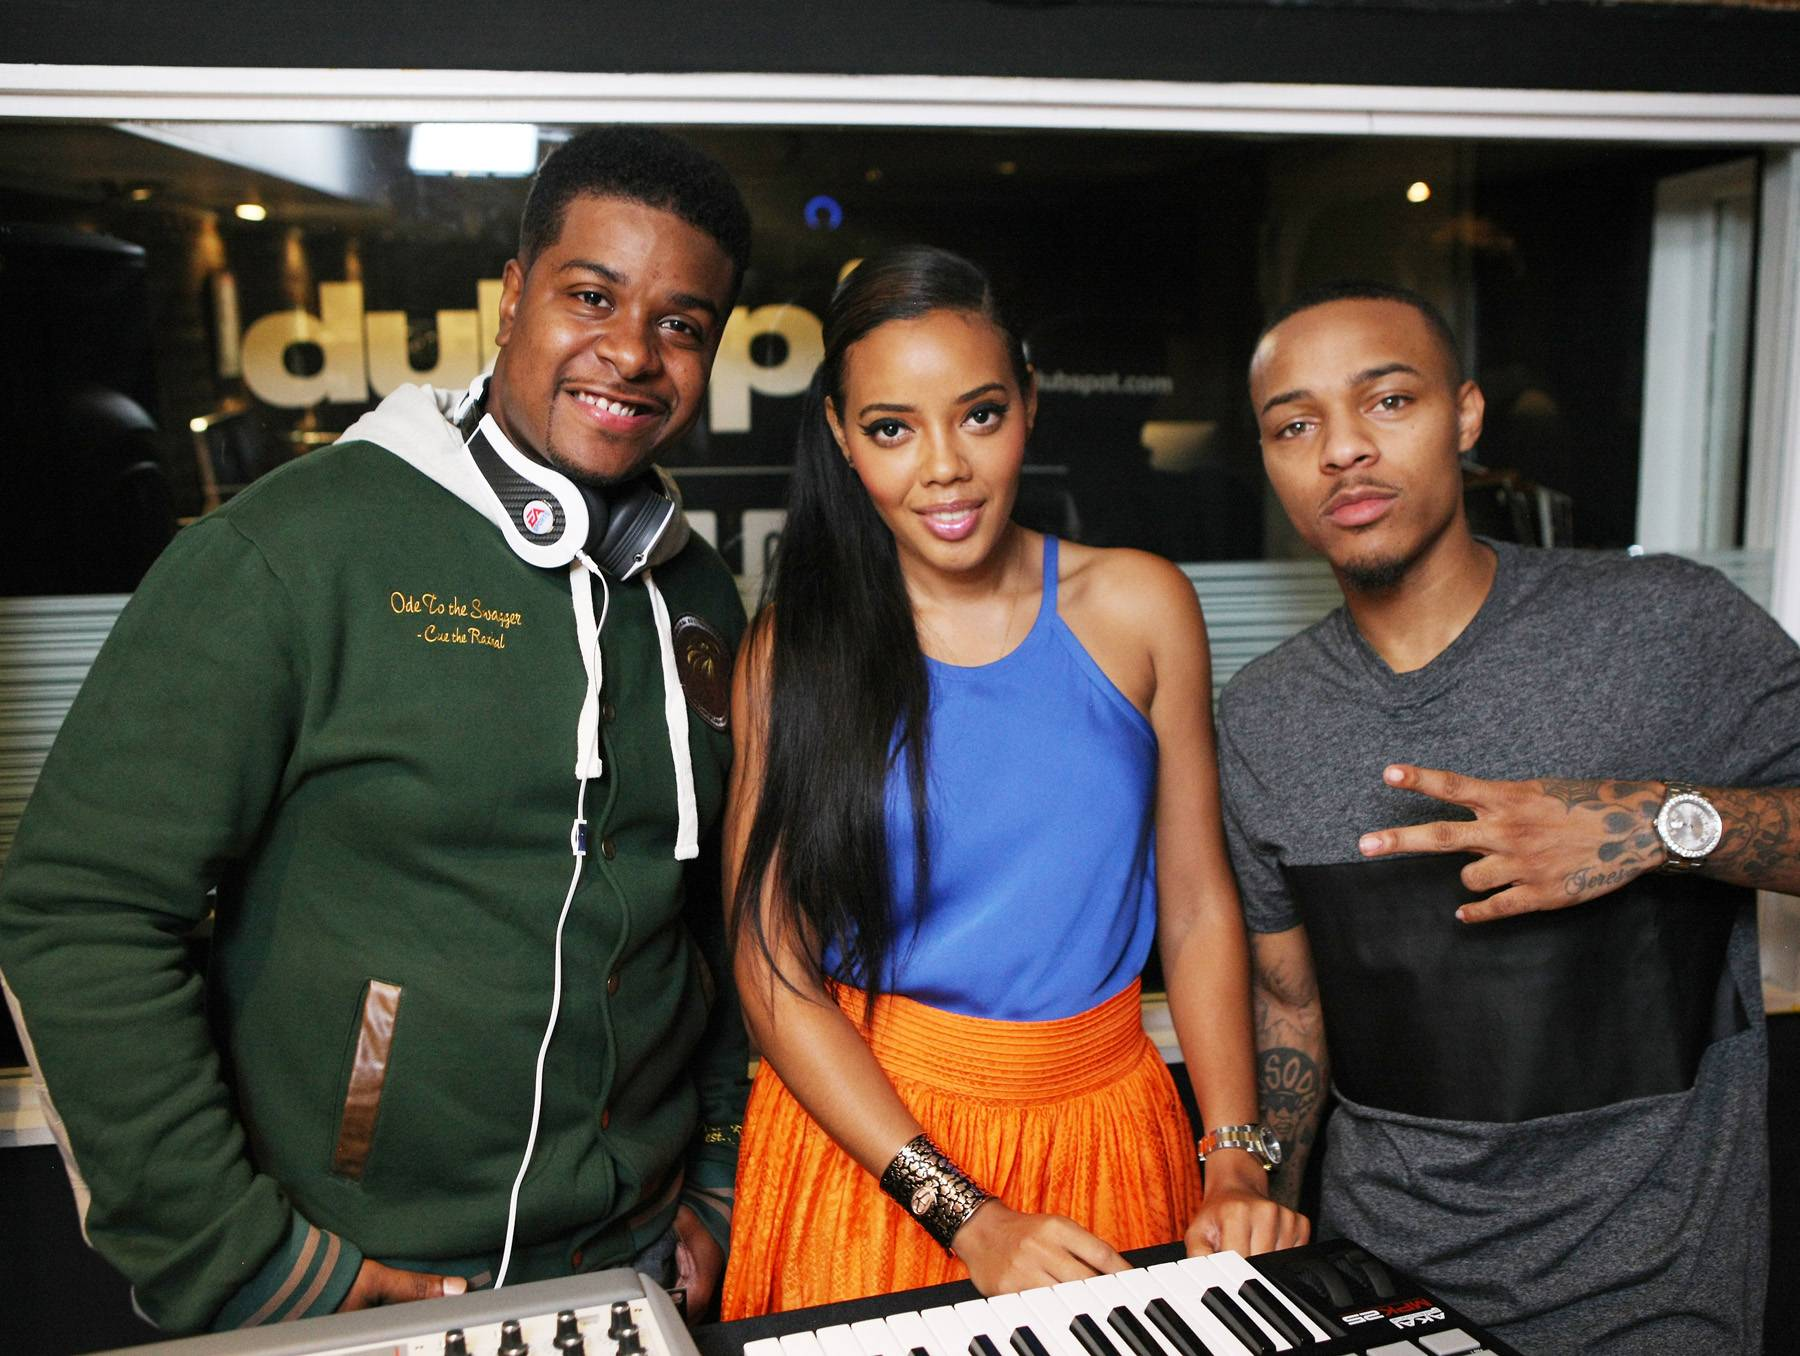 Smooth Beats - Music producer Amadeus, Angela Simmons and Bow Wow coolin' on 106. (Photo: Bennett Raglin/BET/Getty Images for BET)